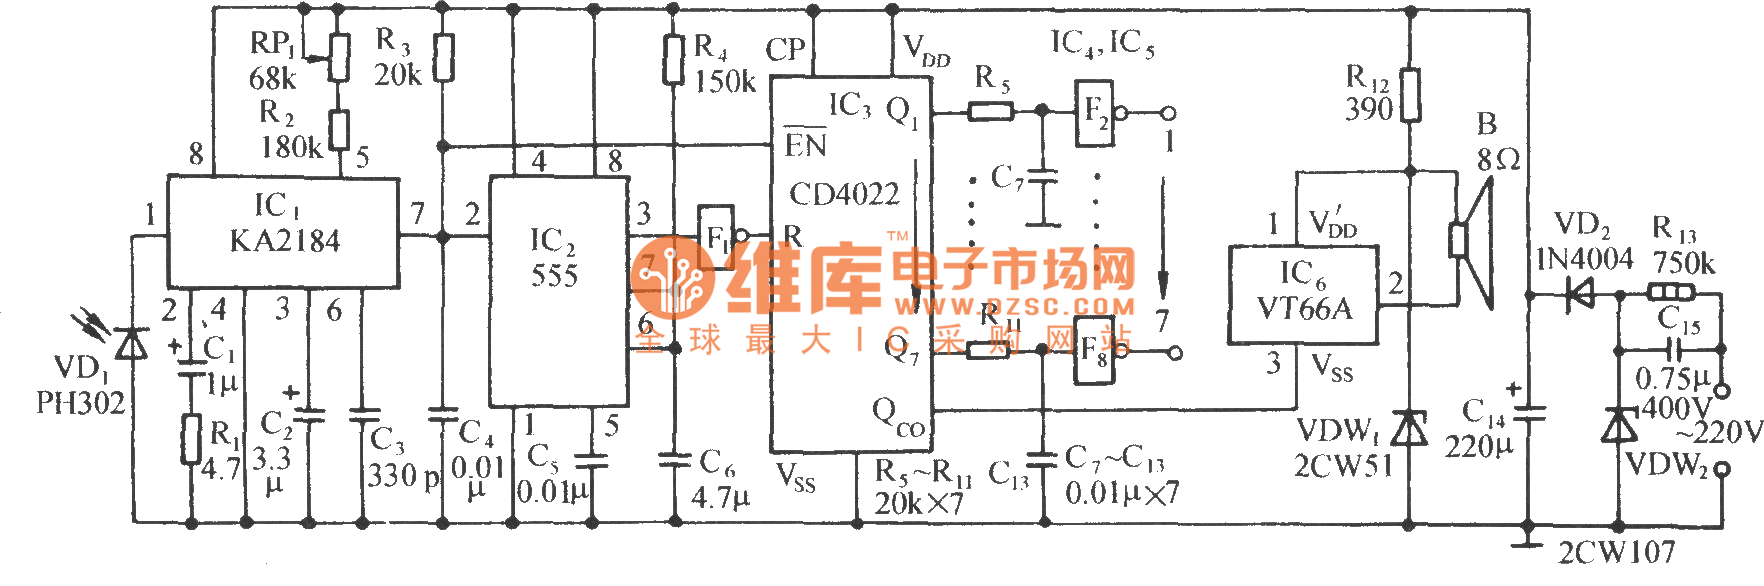 Pulse Dialing Seven Road Infrared Remote Control Circuit Diagram Ir